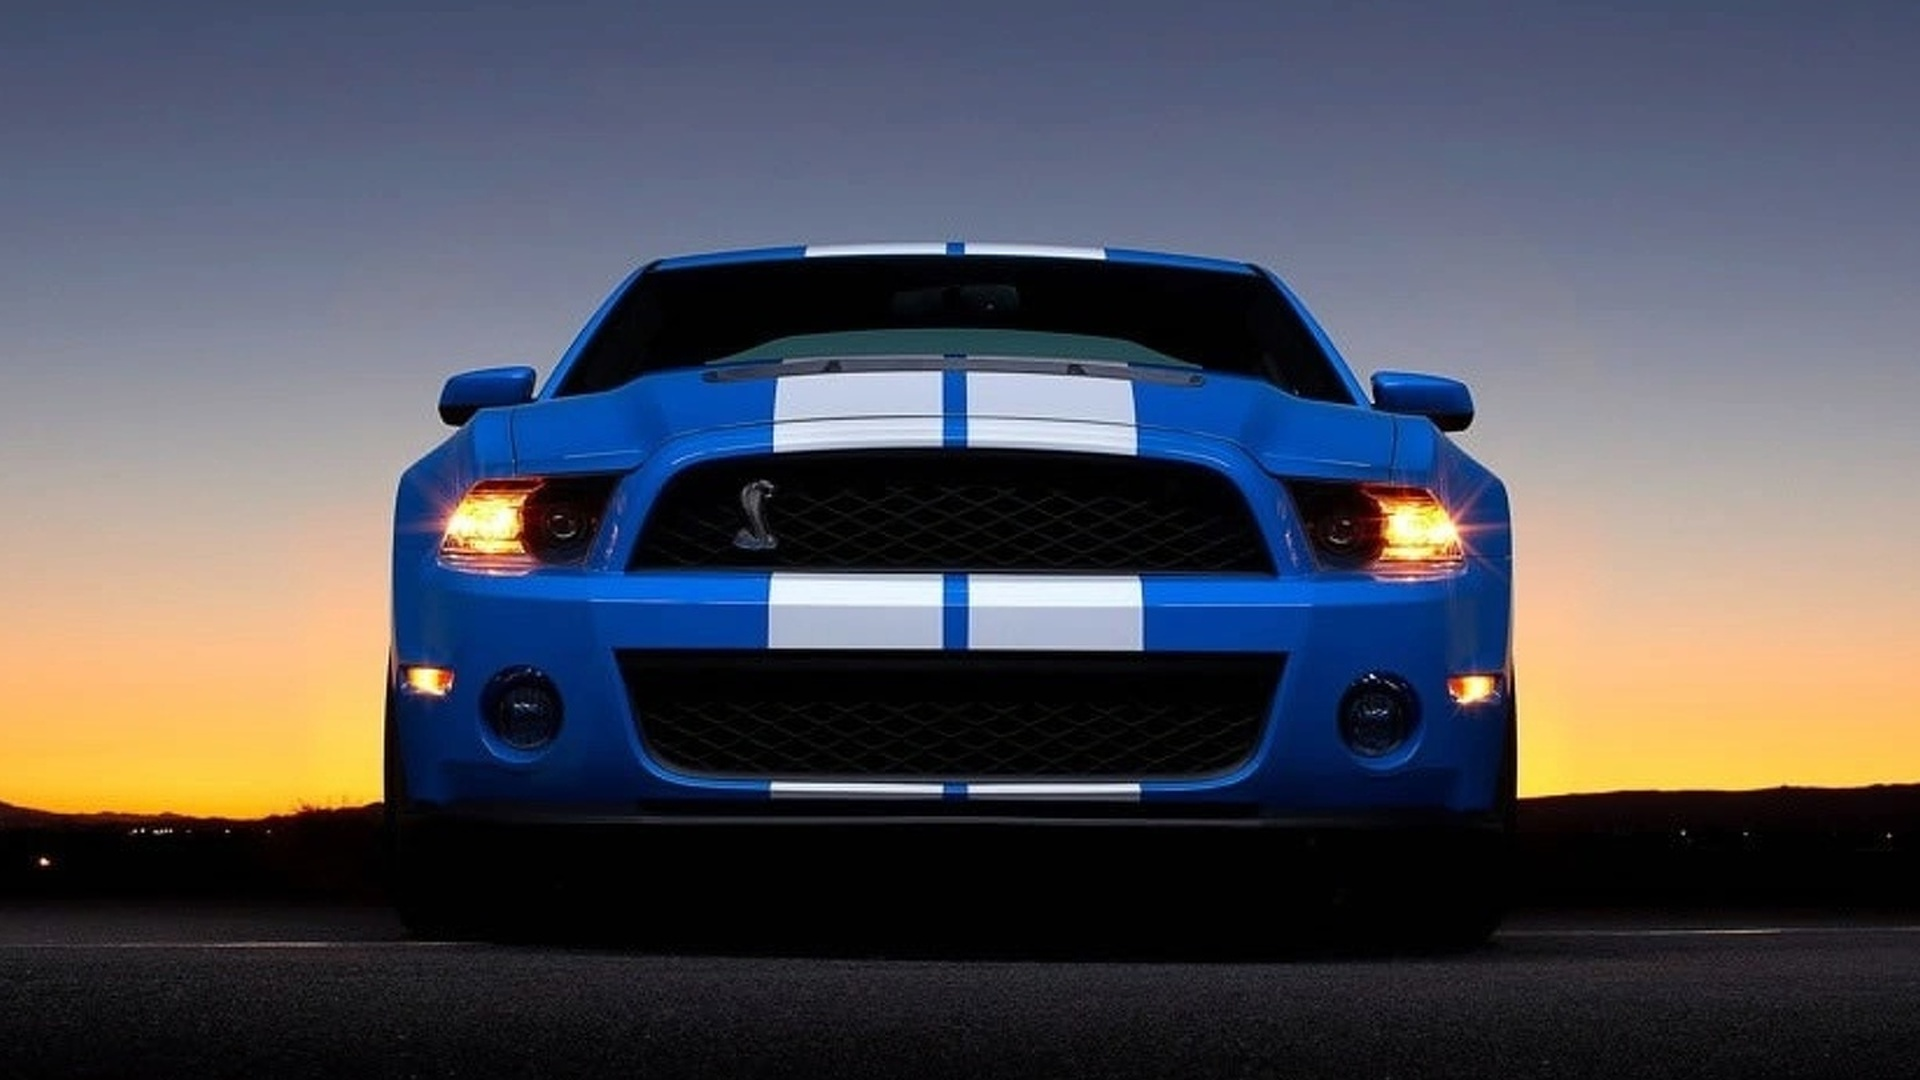 First 2010 Ford Shelby Gt500 Two Mustang Gt Concept Cars To Be